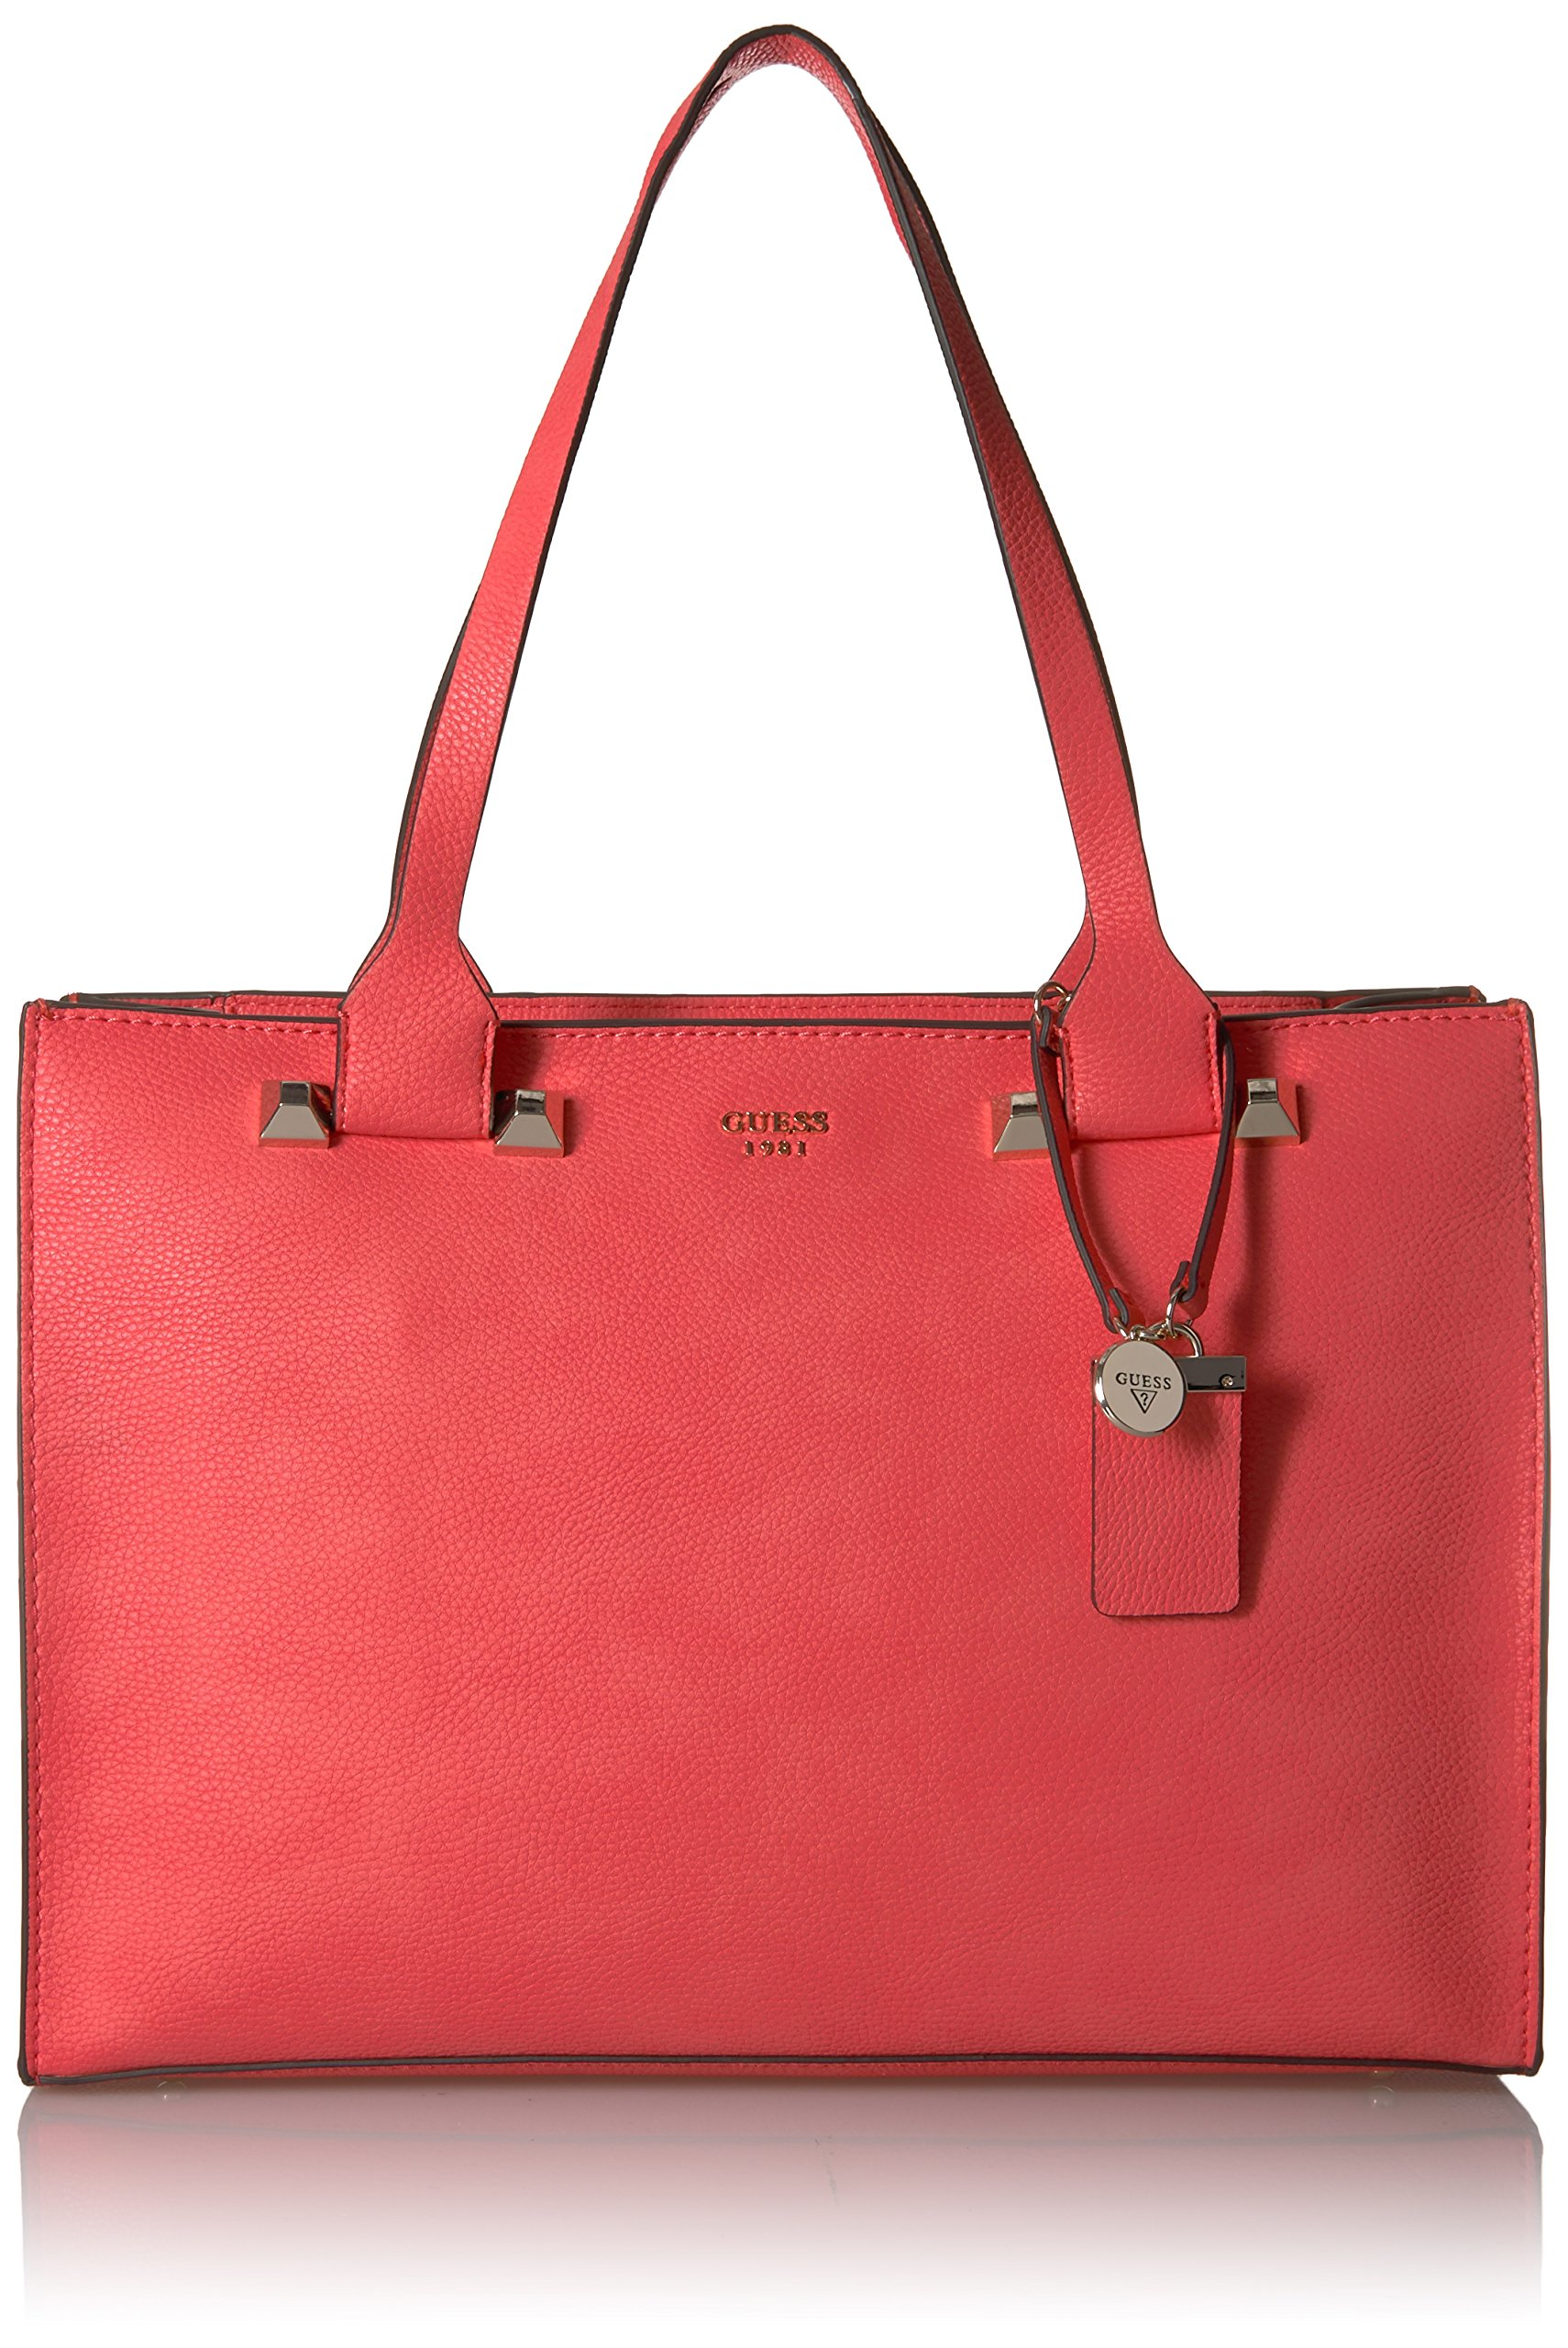 GUESS Talan Tote Shoulder Bag Bag